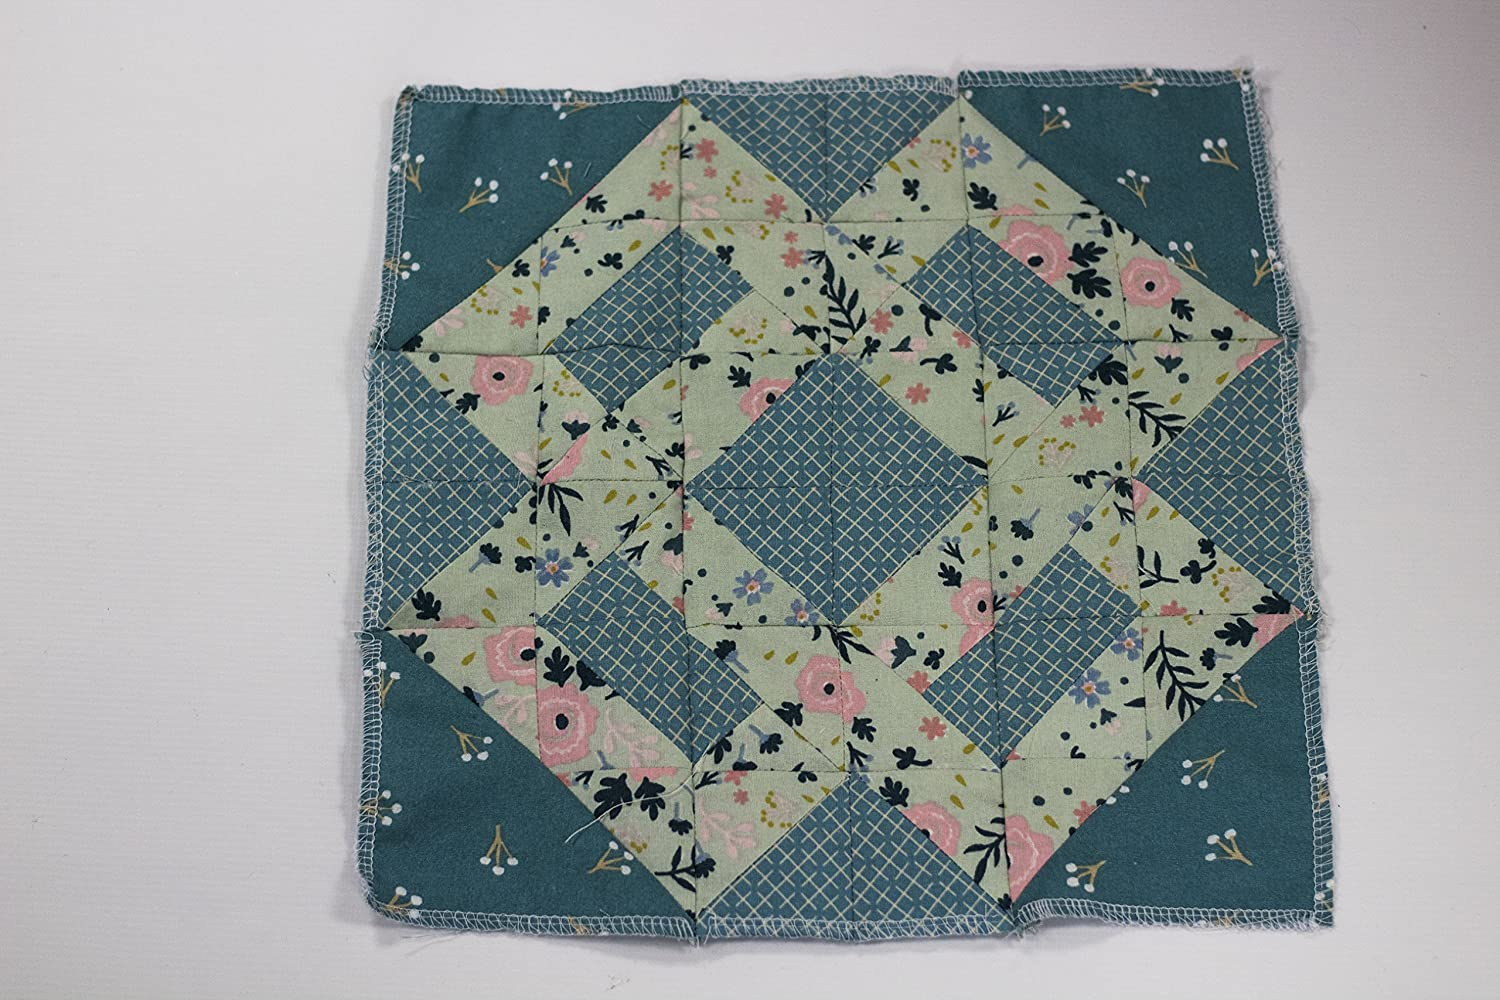 Threaders GEM MD-BAB Bulld Gemini Patchwork System Build-a-Block Textile /& Fabric Patch Work Quilting Set Silver